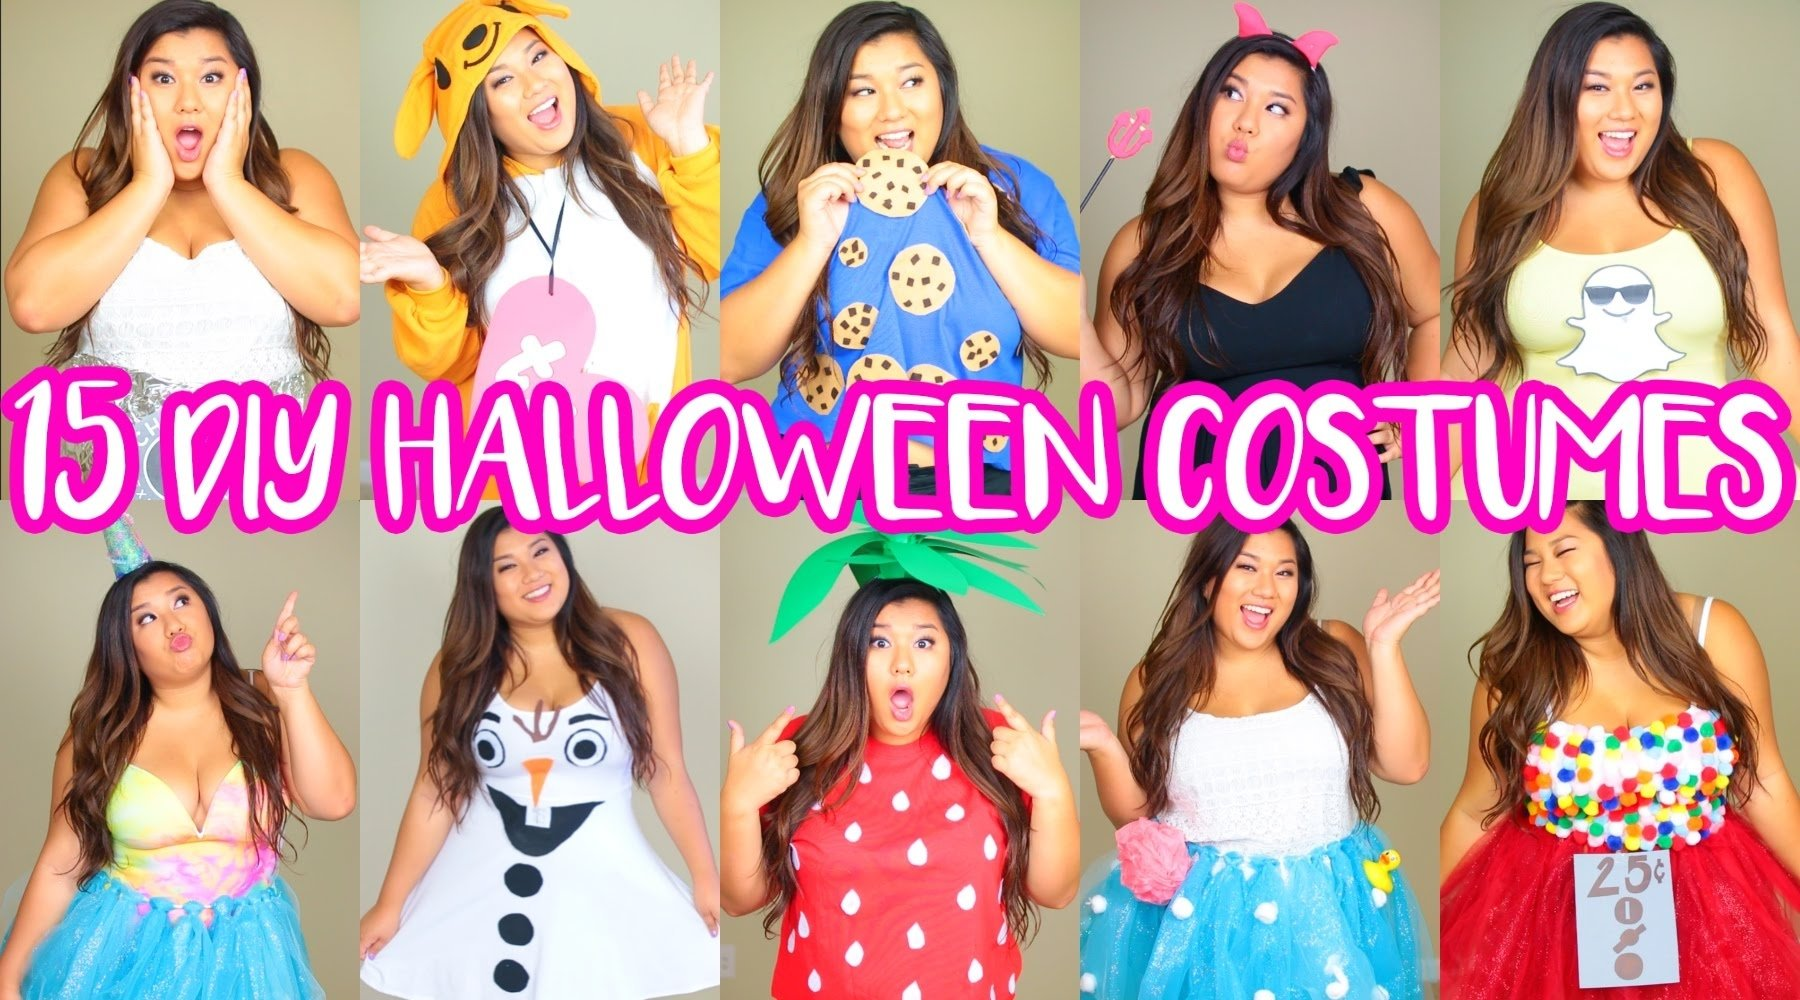 10 Lovable Easy Cute Halloween Costume Ideas 15 diy halloween costumes last minute cute easy youtube  sc 1 st  Unique Ideas 2018 & 10 Lovable Easy Cute Halloween Costume Ideas